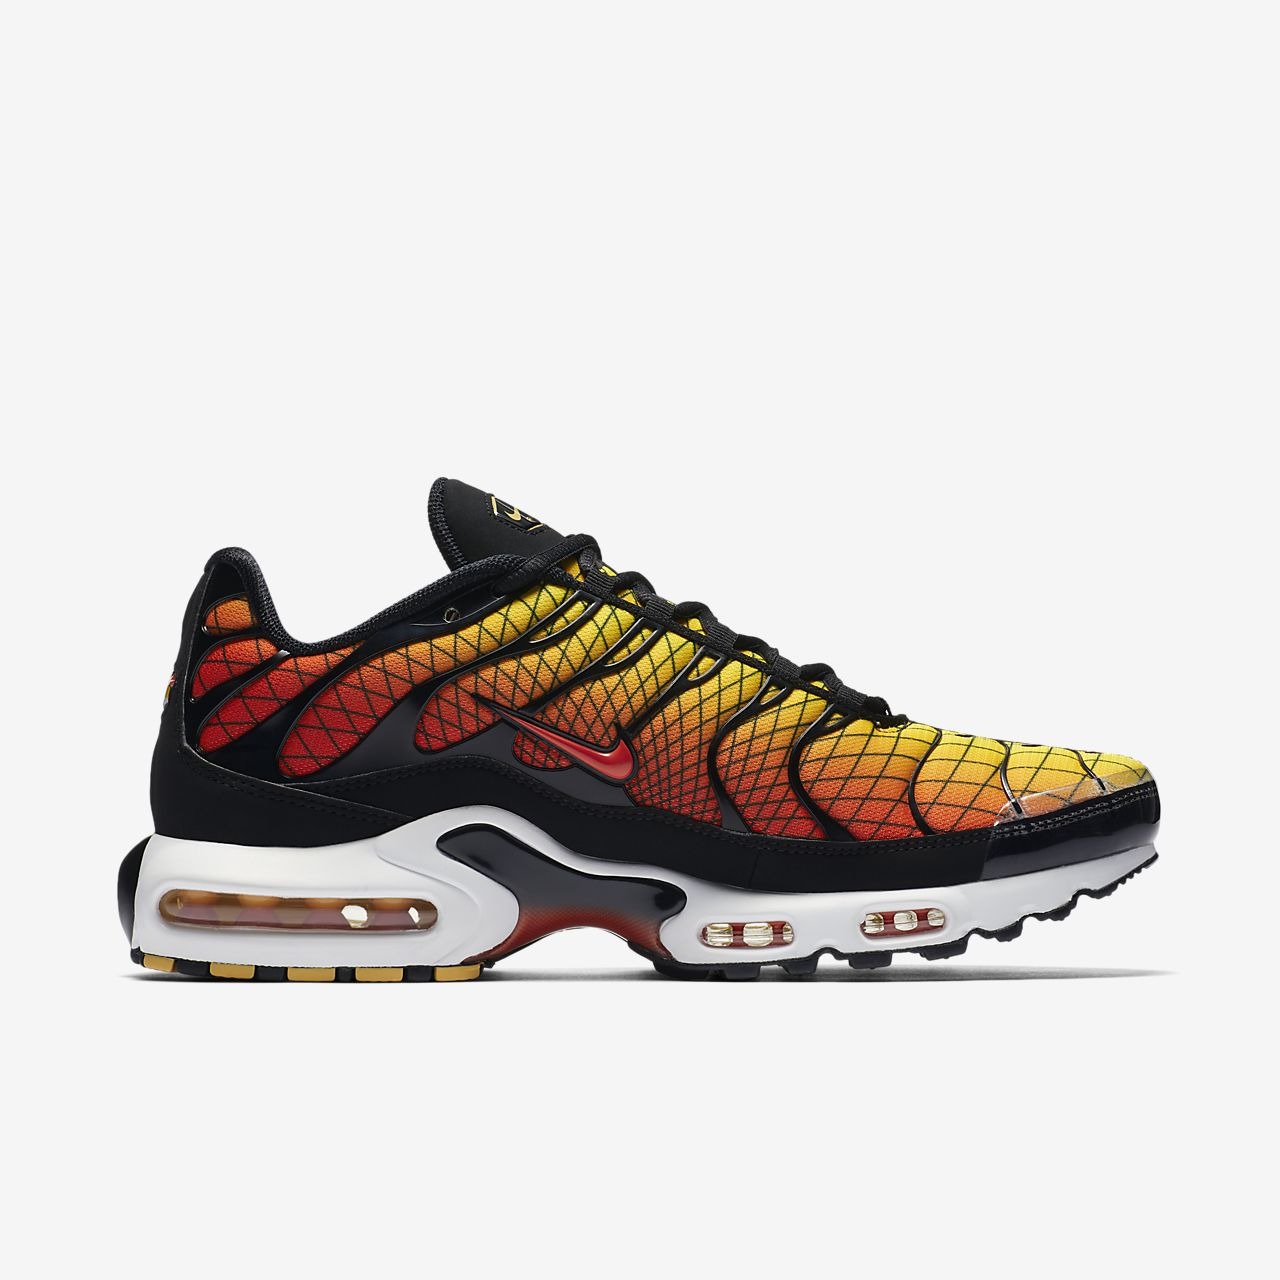 save off e9cee c61eb ... Nike Air Max Plus TN SE Herrenschuh